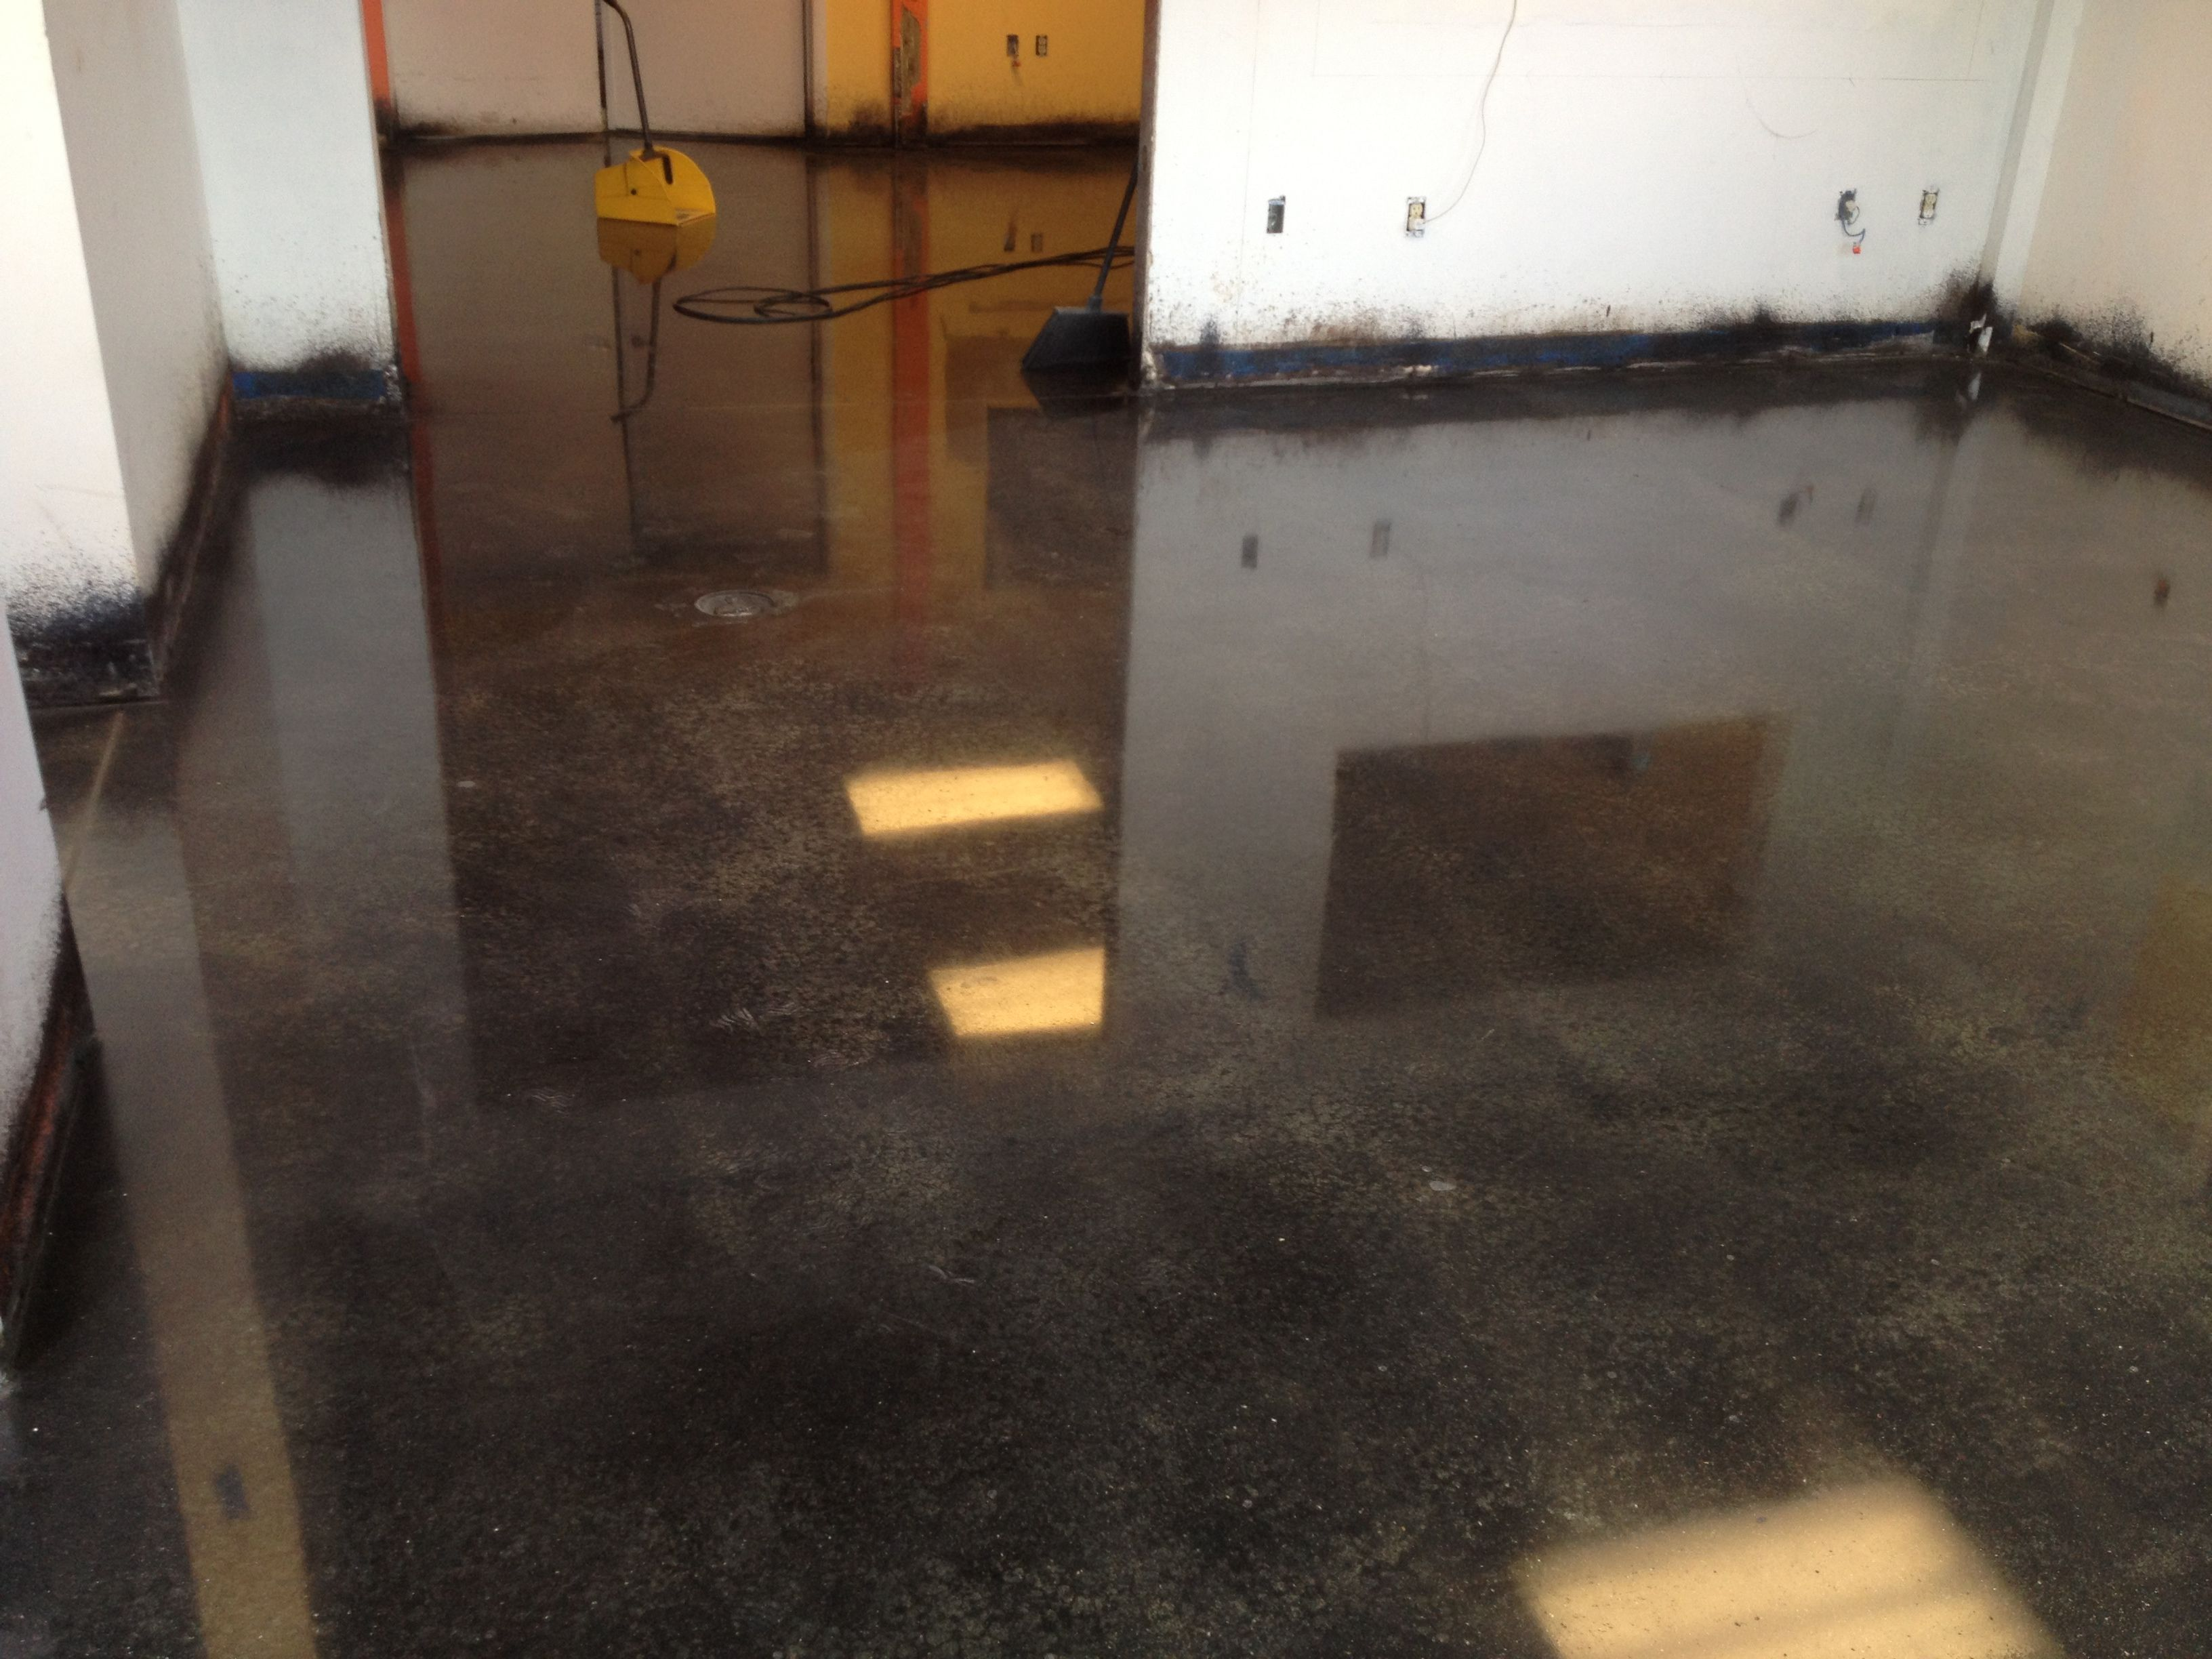 Polished concrete floor, black stain, and polished to a